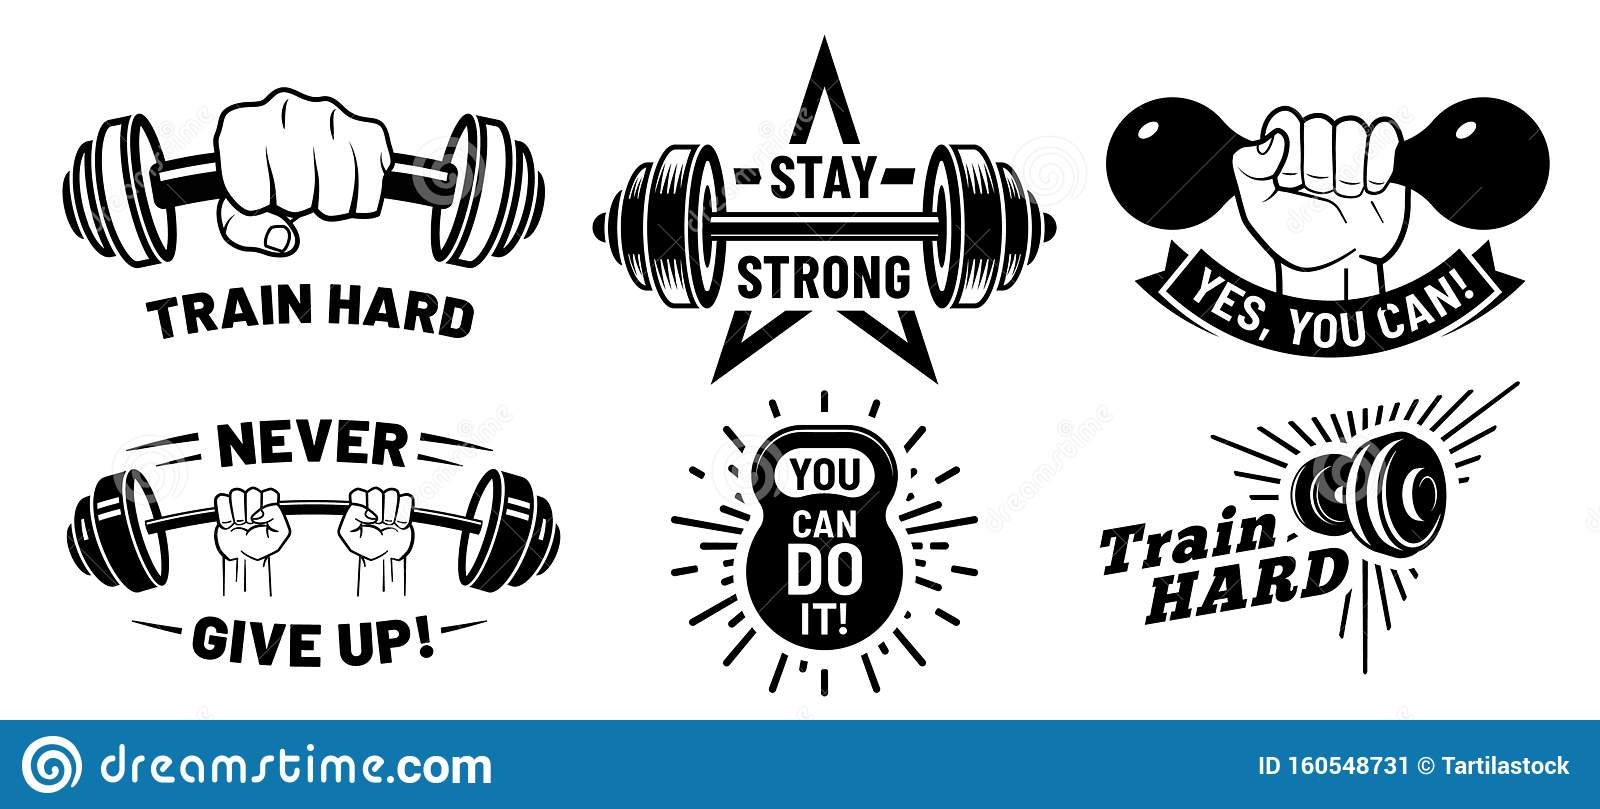 Gym Quotes Stock Illustrations 1 365 Gym Quotes Stock Illustrations Vectors Clipart Dreamstime